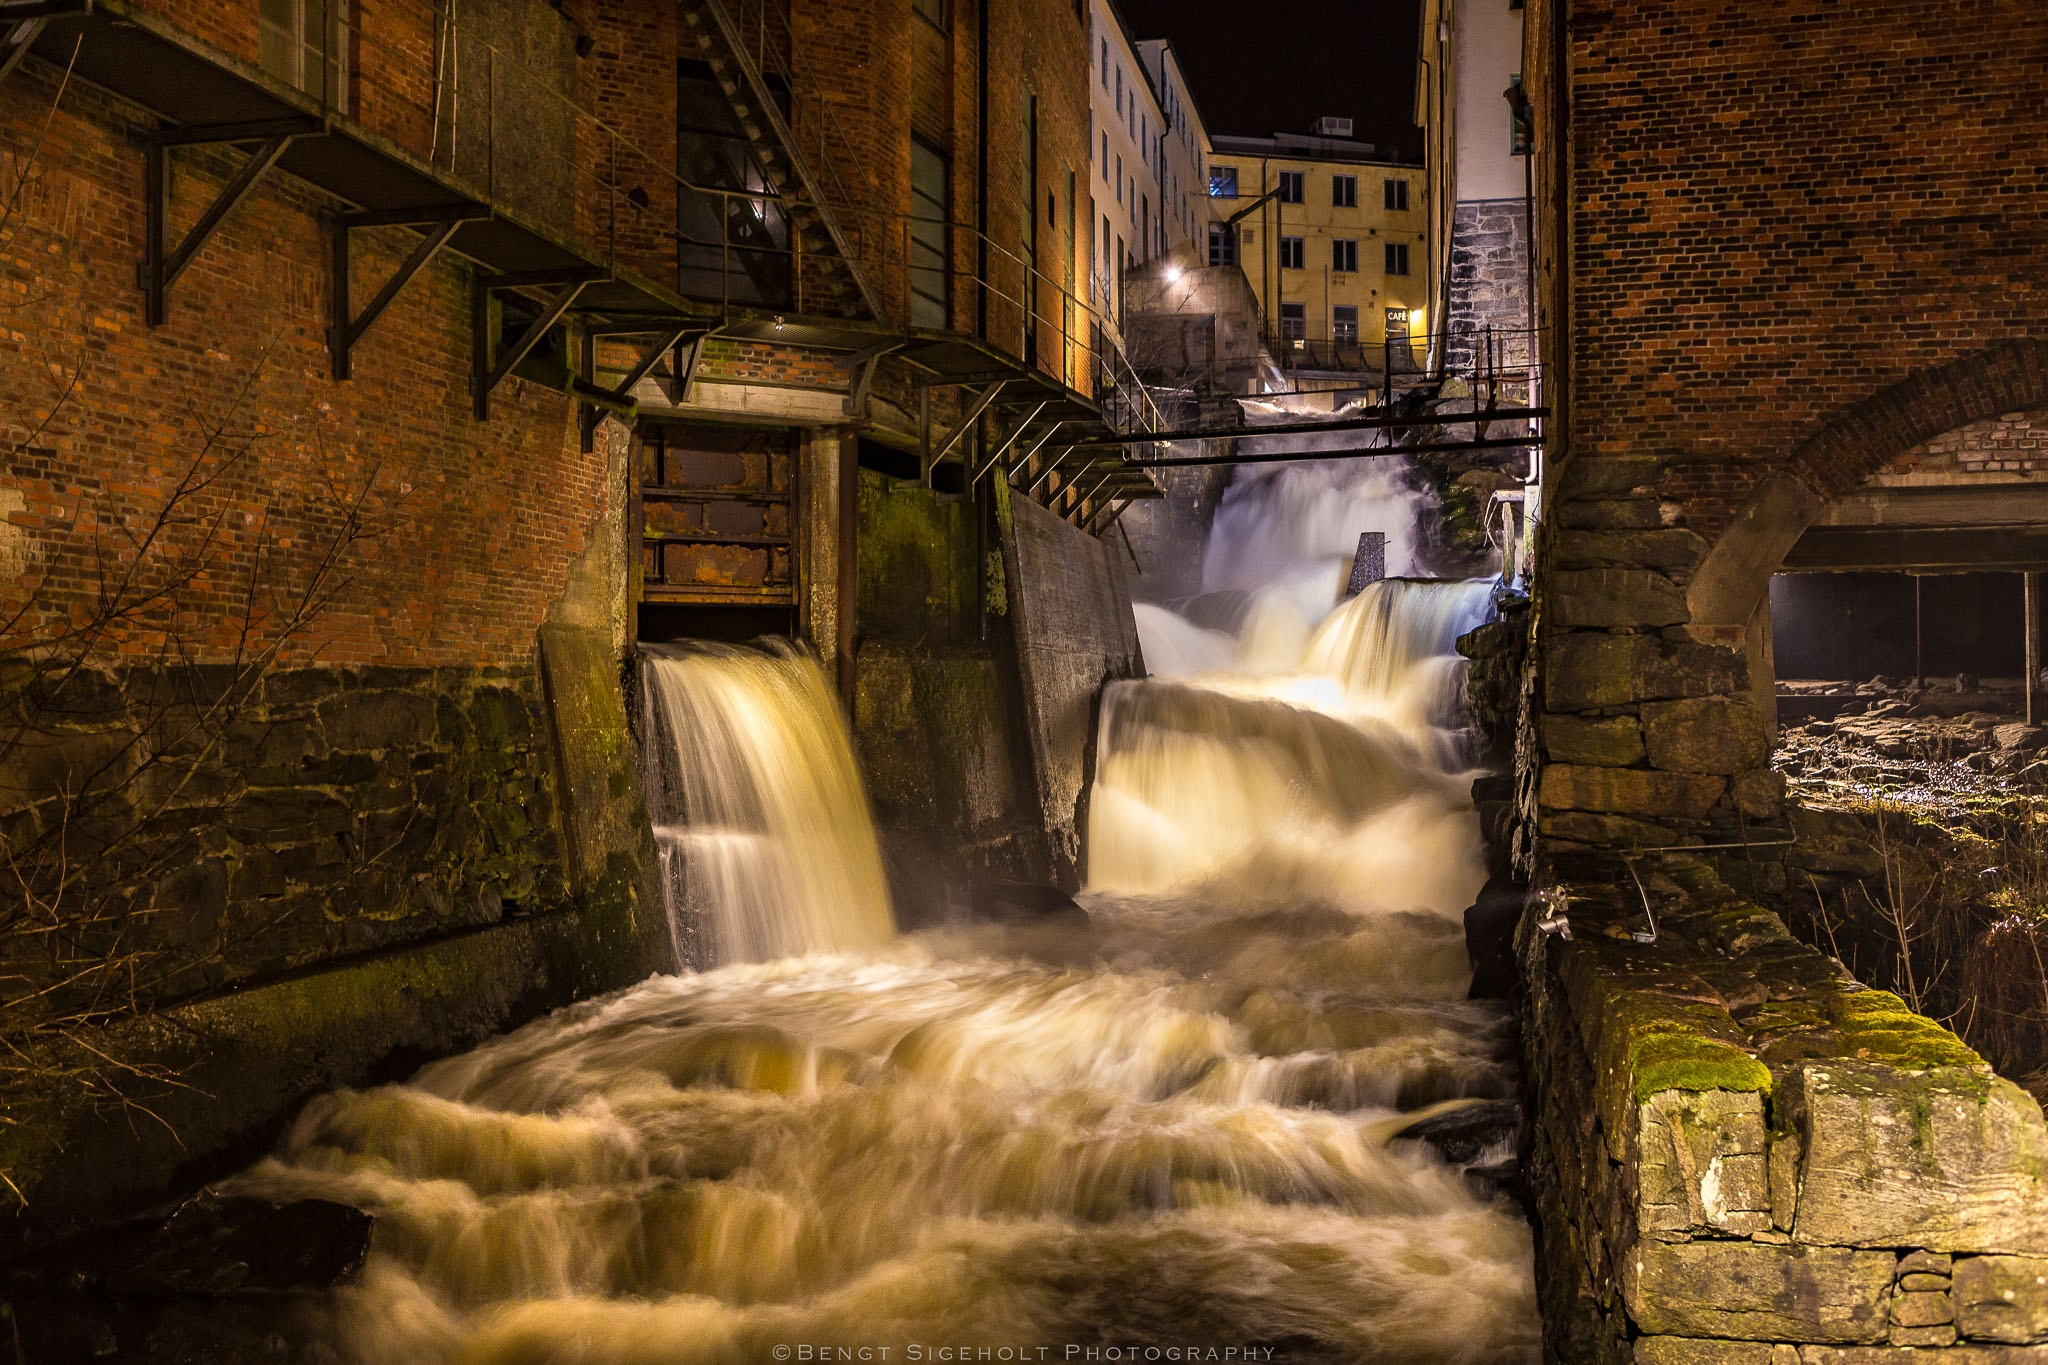 Water power by Bengt Sigeholt Photography